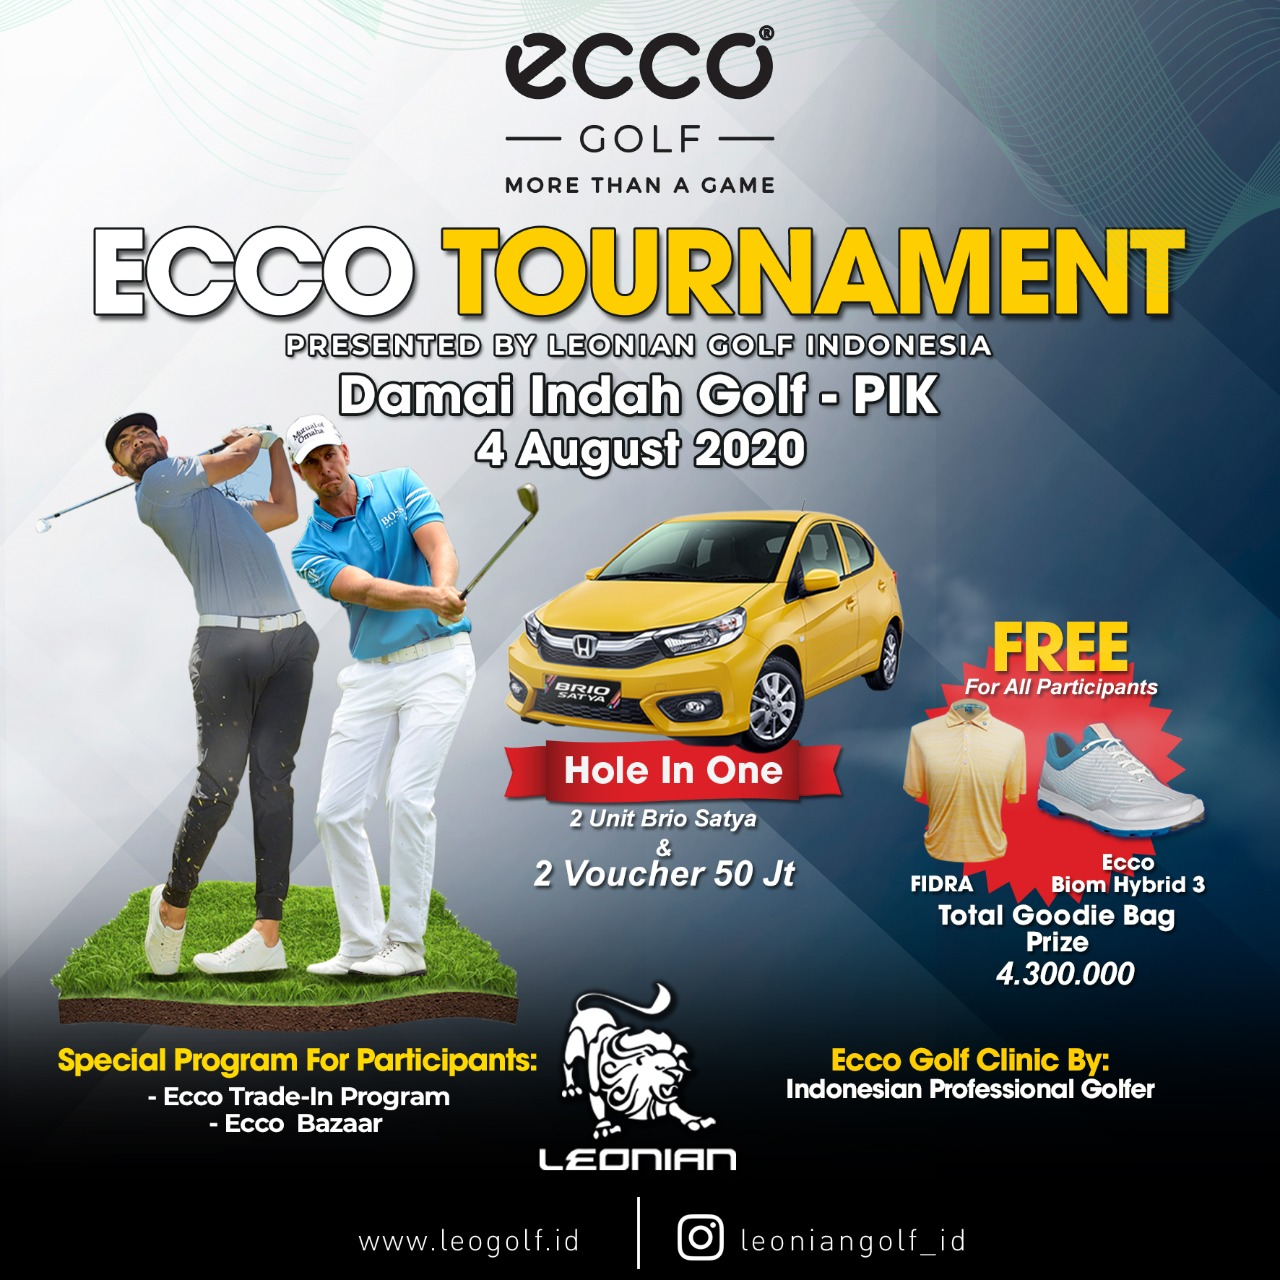 ecco-tournament